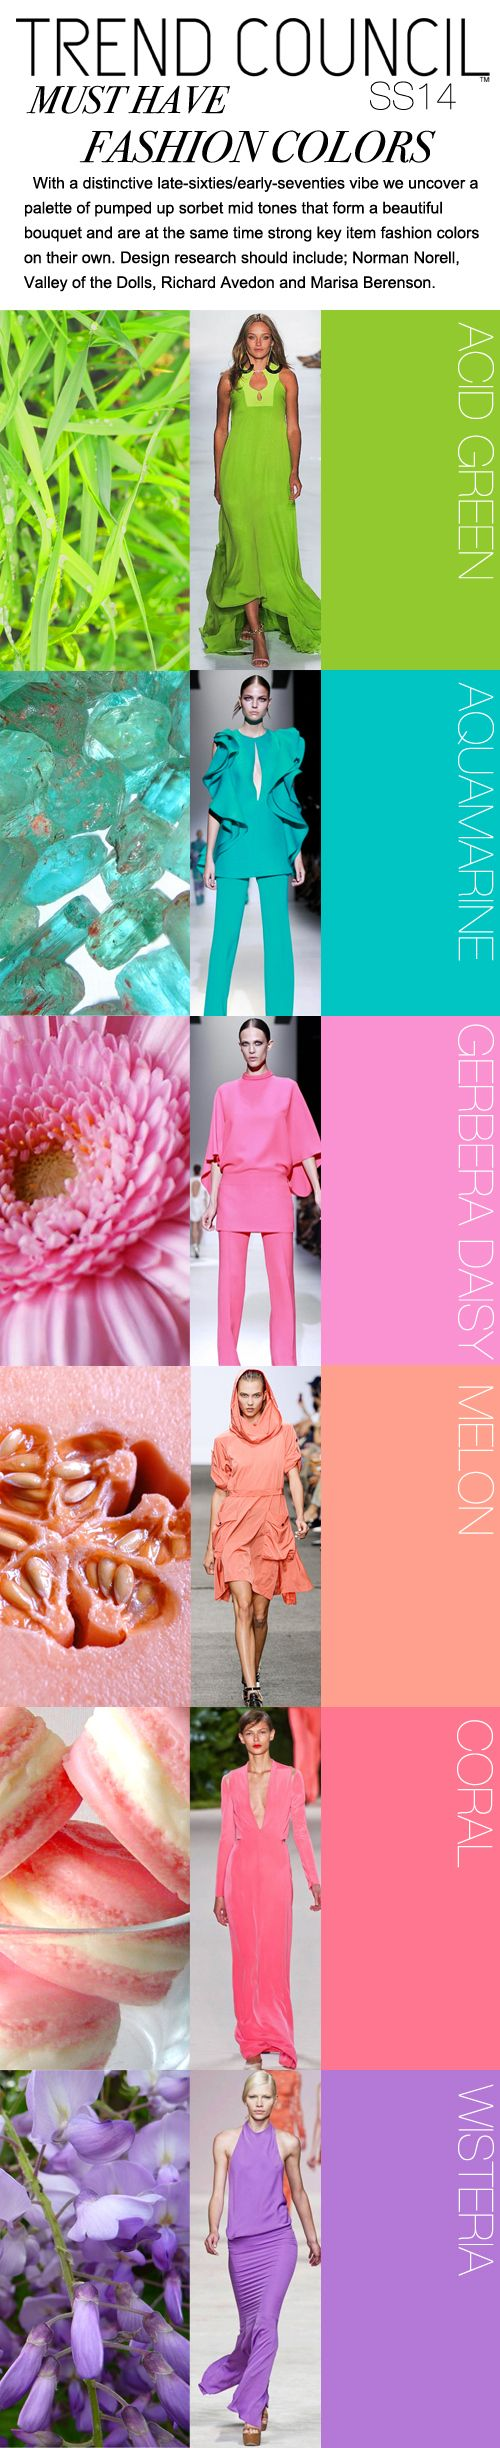 Here is Trend Council's SS 2014 COLOR TRENDS FIRECAST  Late 60s-early 70s...that's something us 60-something's know a thing or two about!